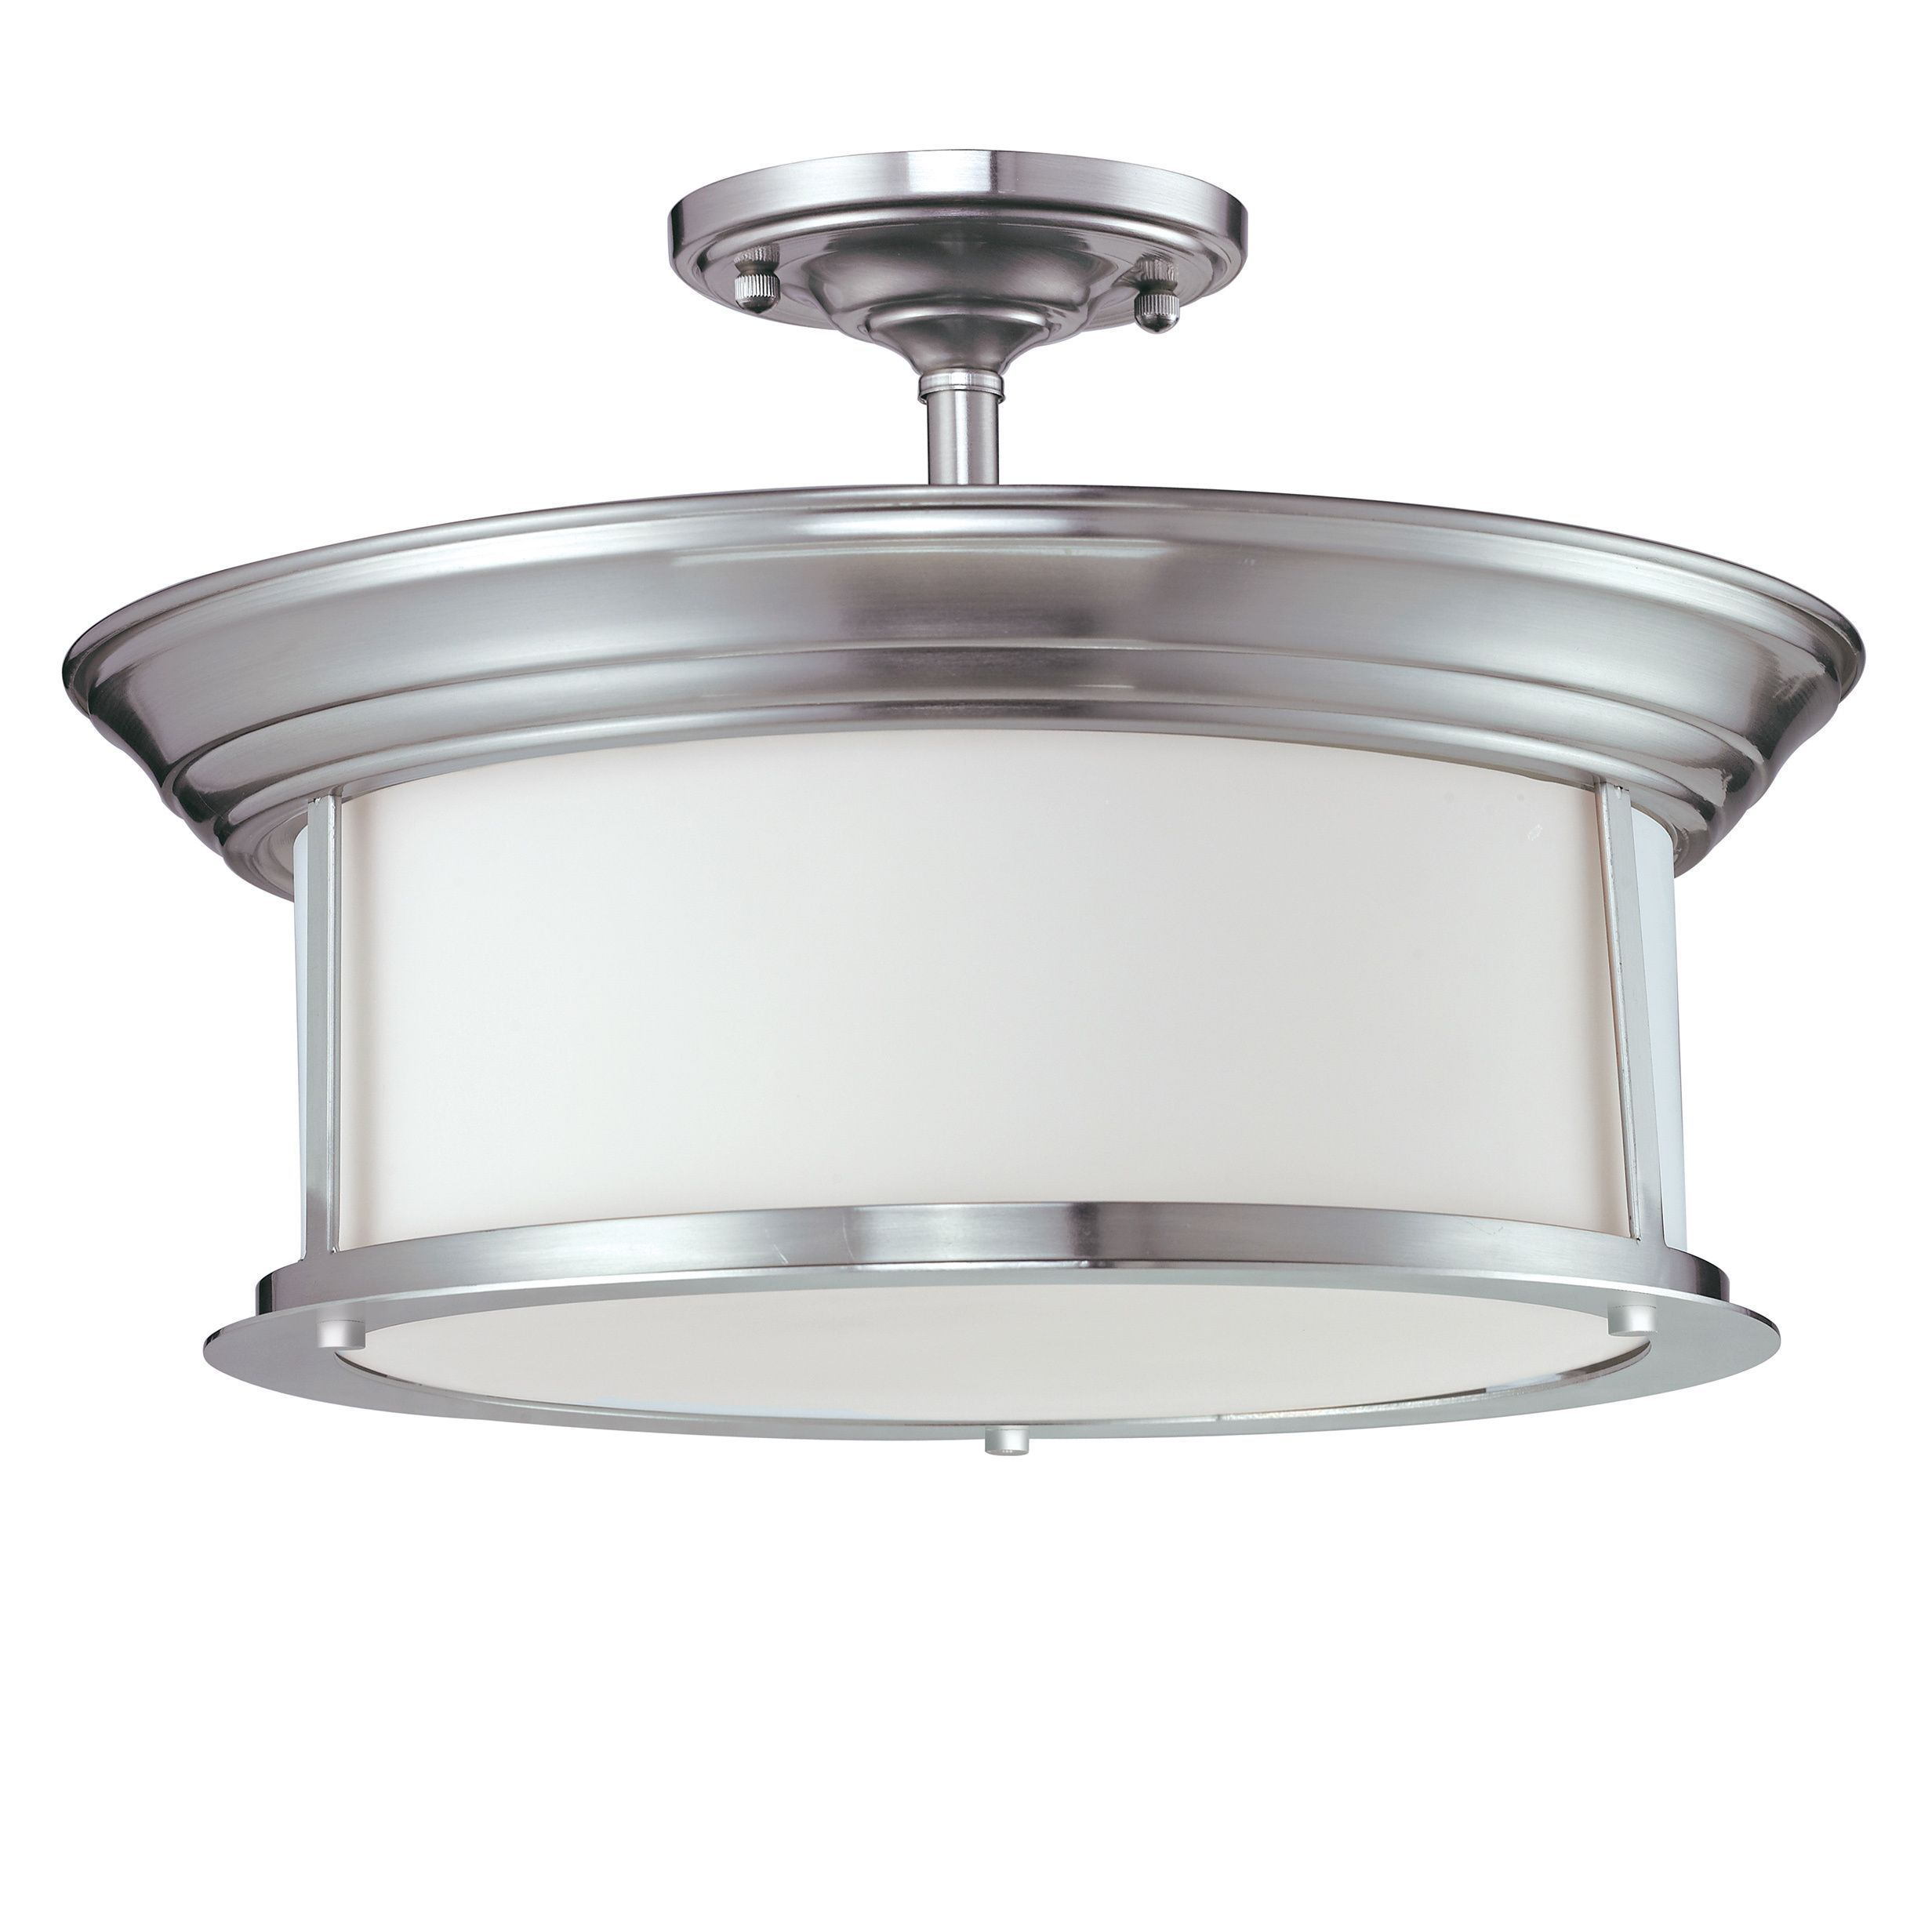 Avery Home Lighting 3light Semiflush Mount Pendant Lamp